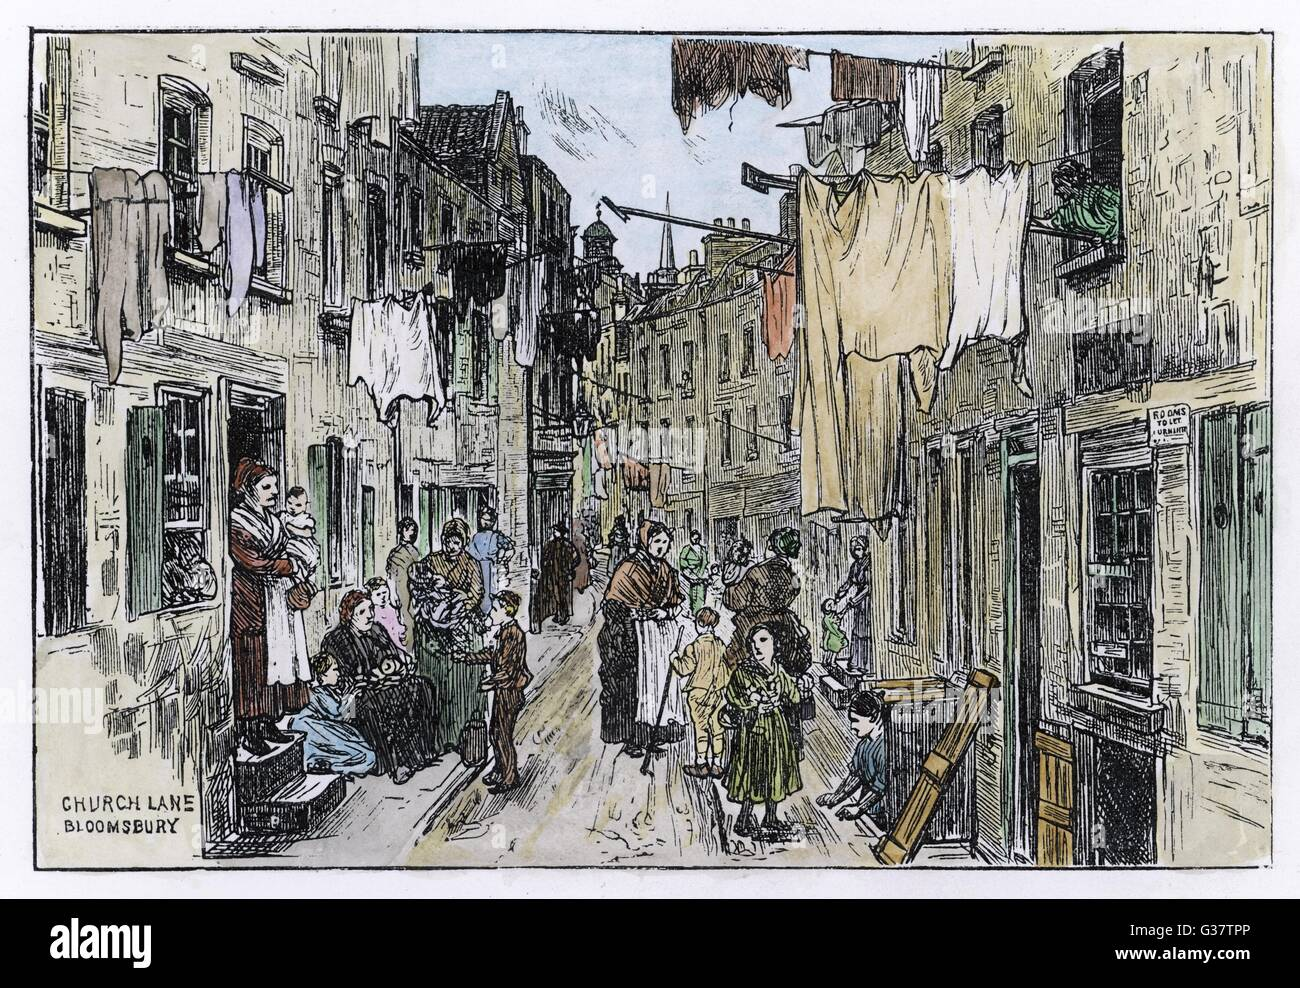 A street scene in Church Lane,  Bloomsbury, London -  mothers and children mingle in the street while washing hangs - Stock Image